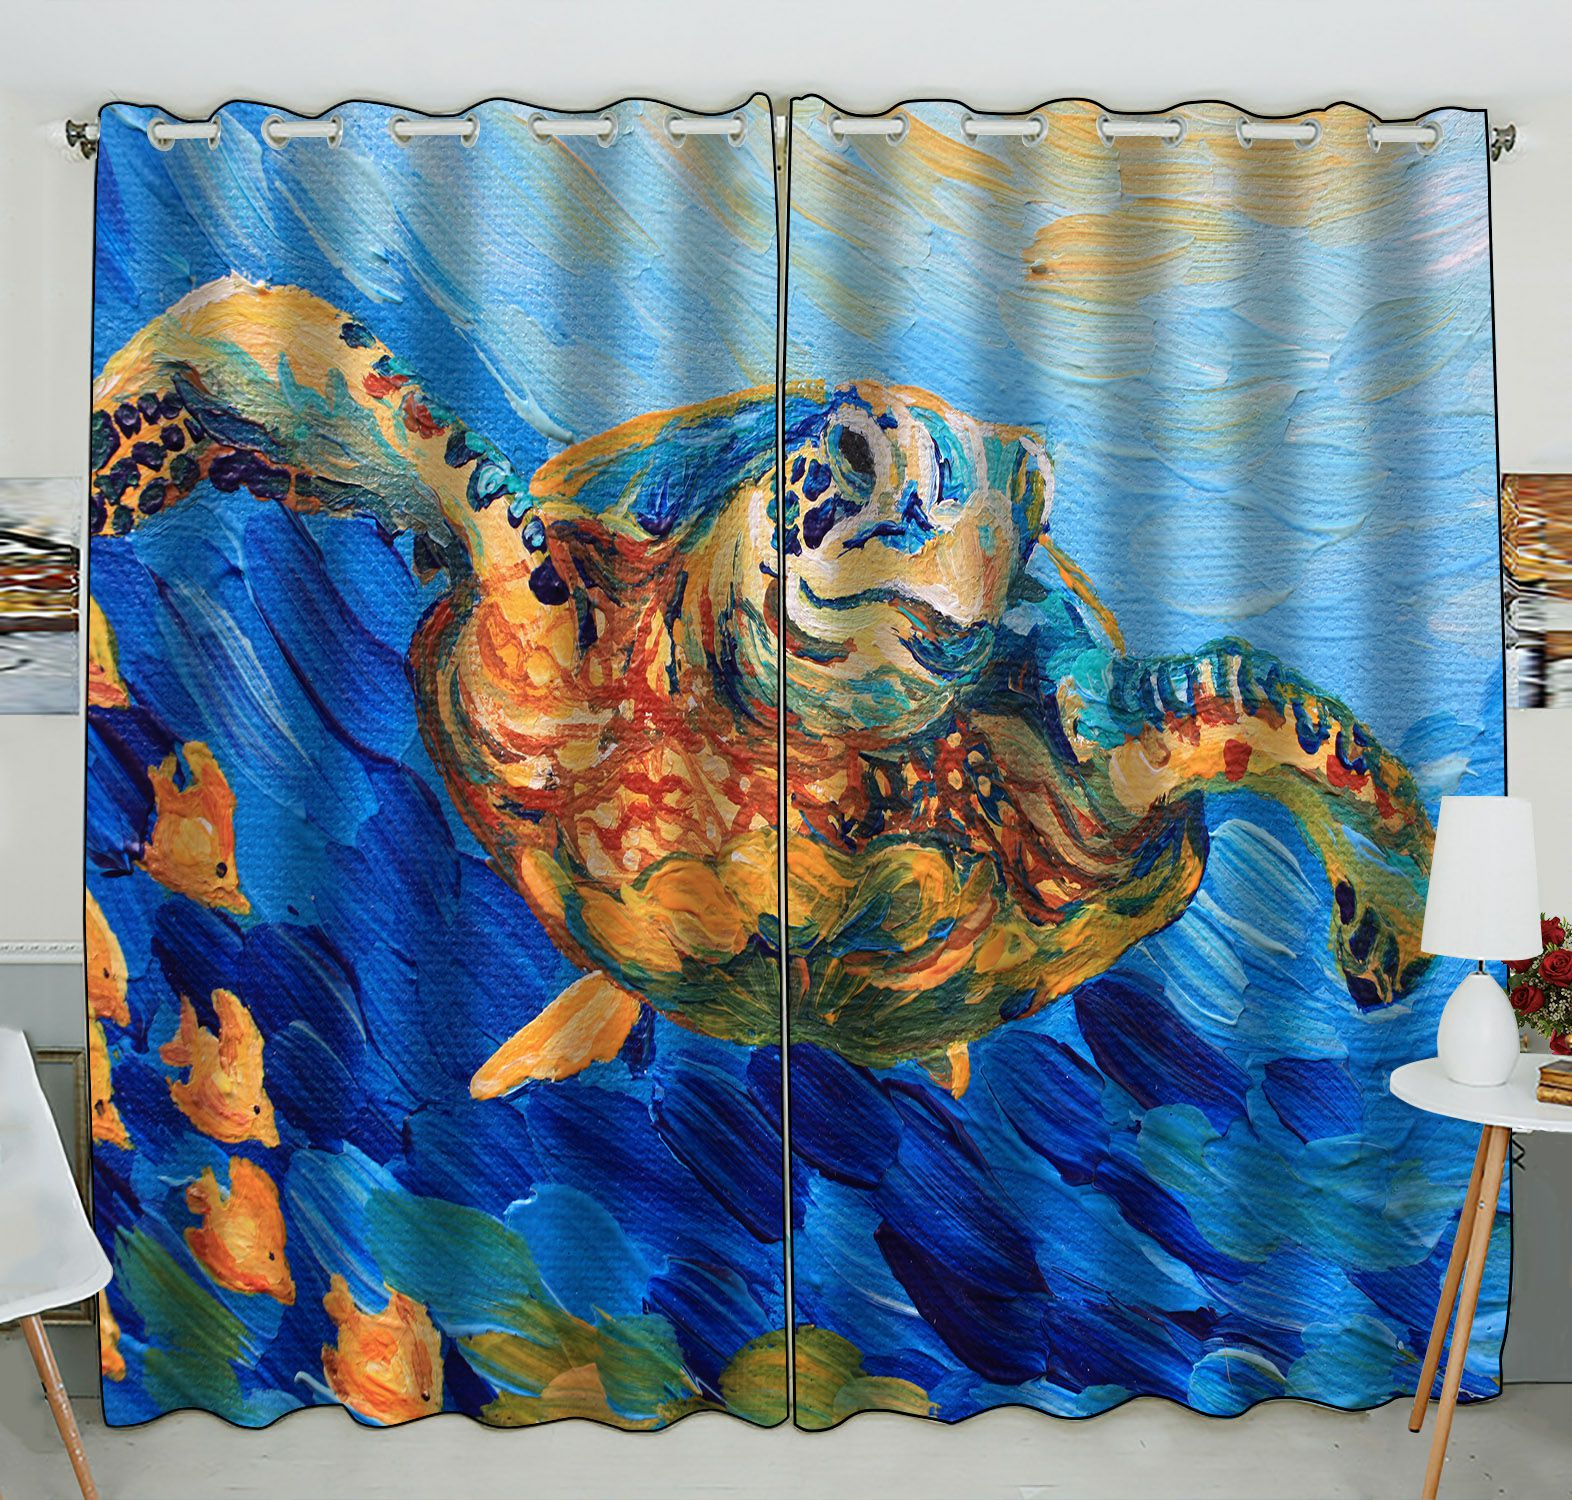 ZKGK Sea Turtle Painting Window Curtain Drapery/Panels/Treatment For Living Room Bedroom Kids Rooms 52x84 inches Two Panel